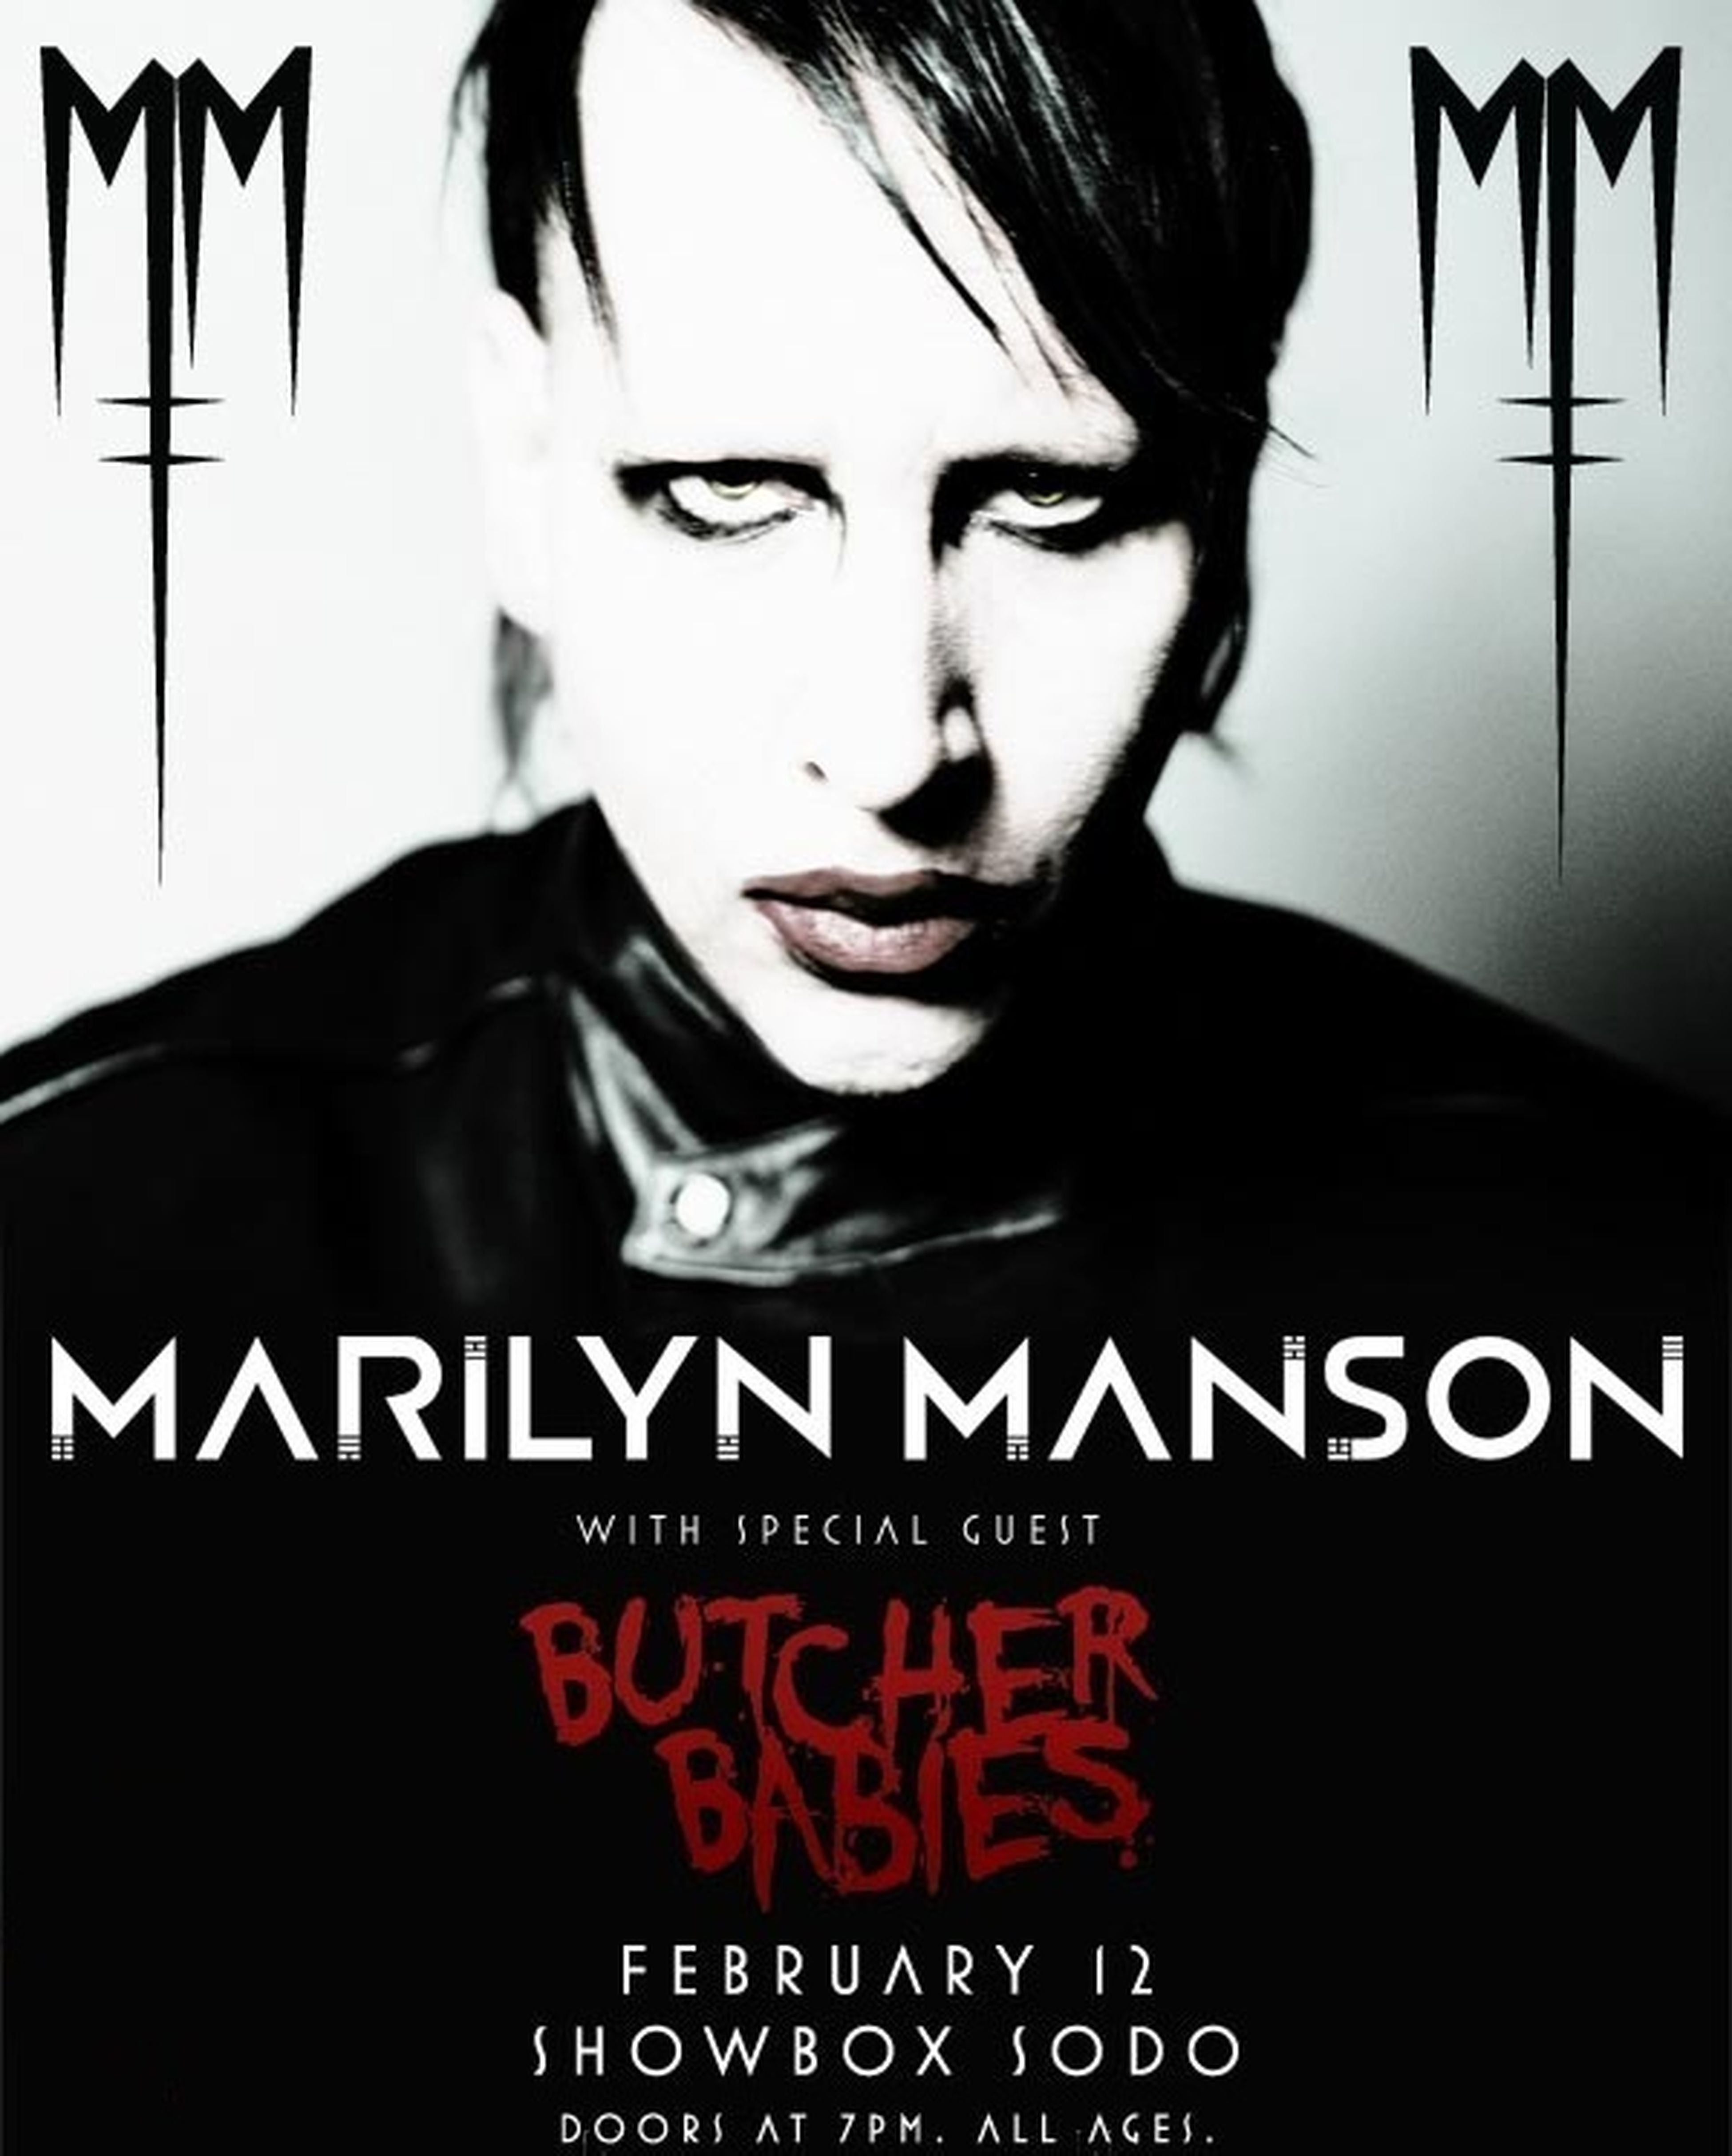 I Think Im The Only Black Person Dat Listen To Marilyn Manson